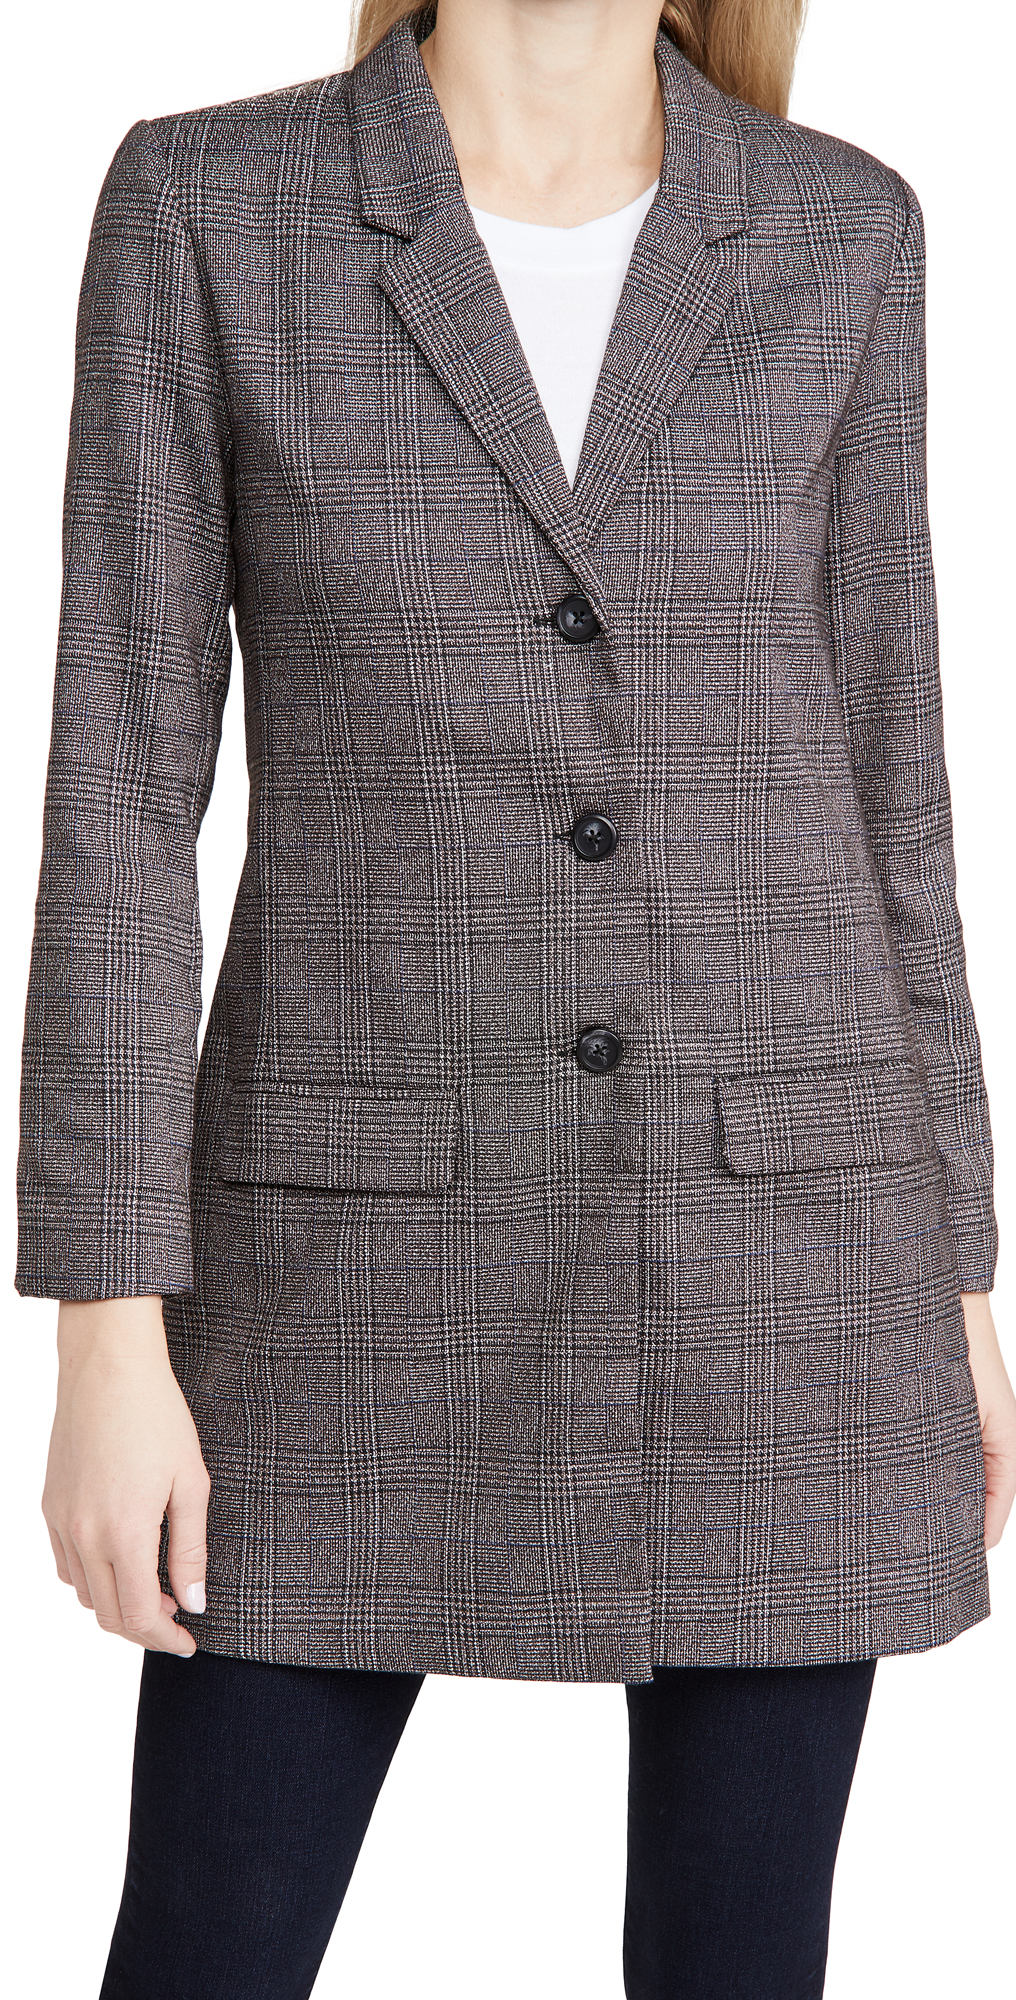 BB Dakota Plaid As I Wanna Be Blazer